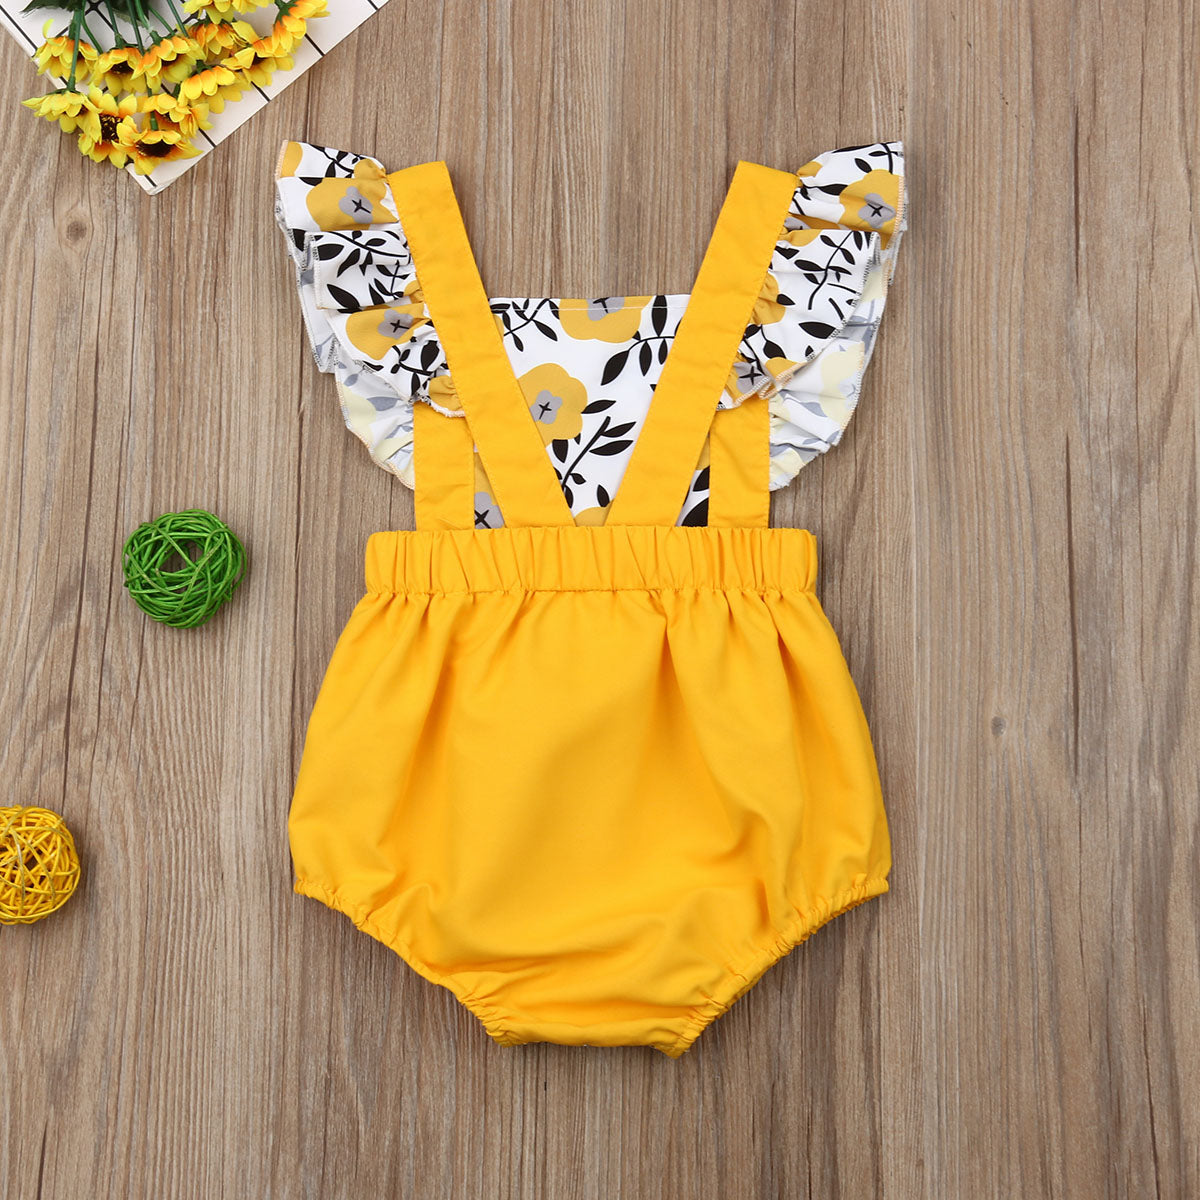 Yellow Poppy Romper